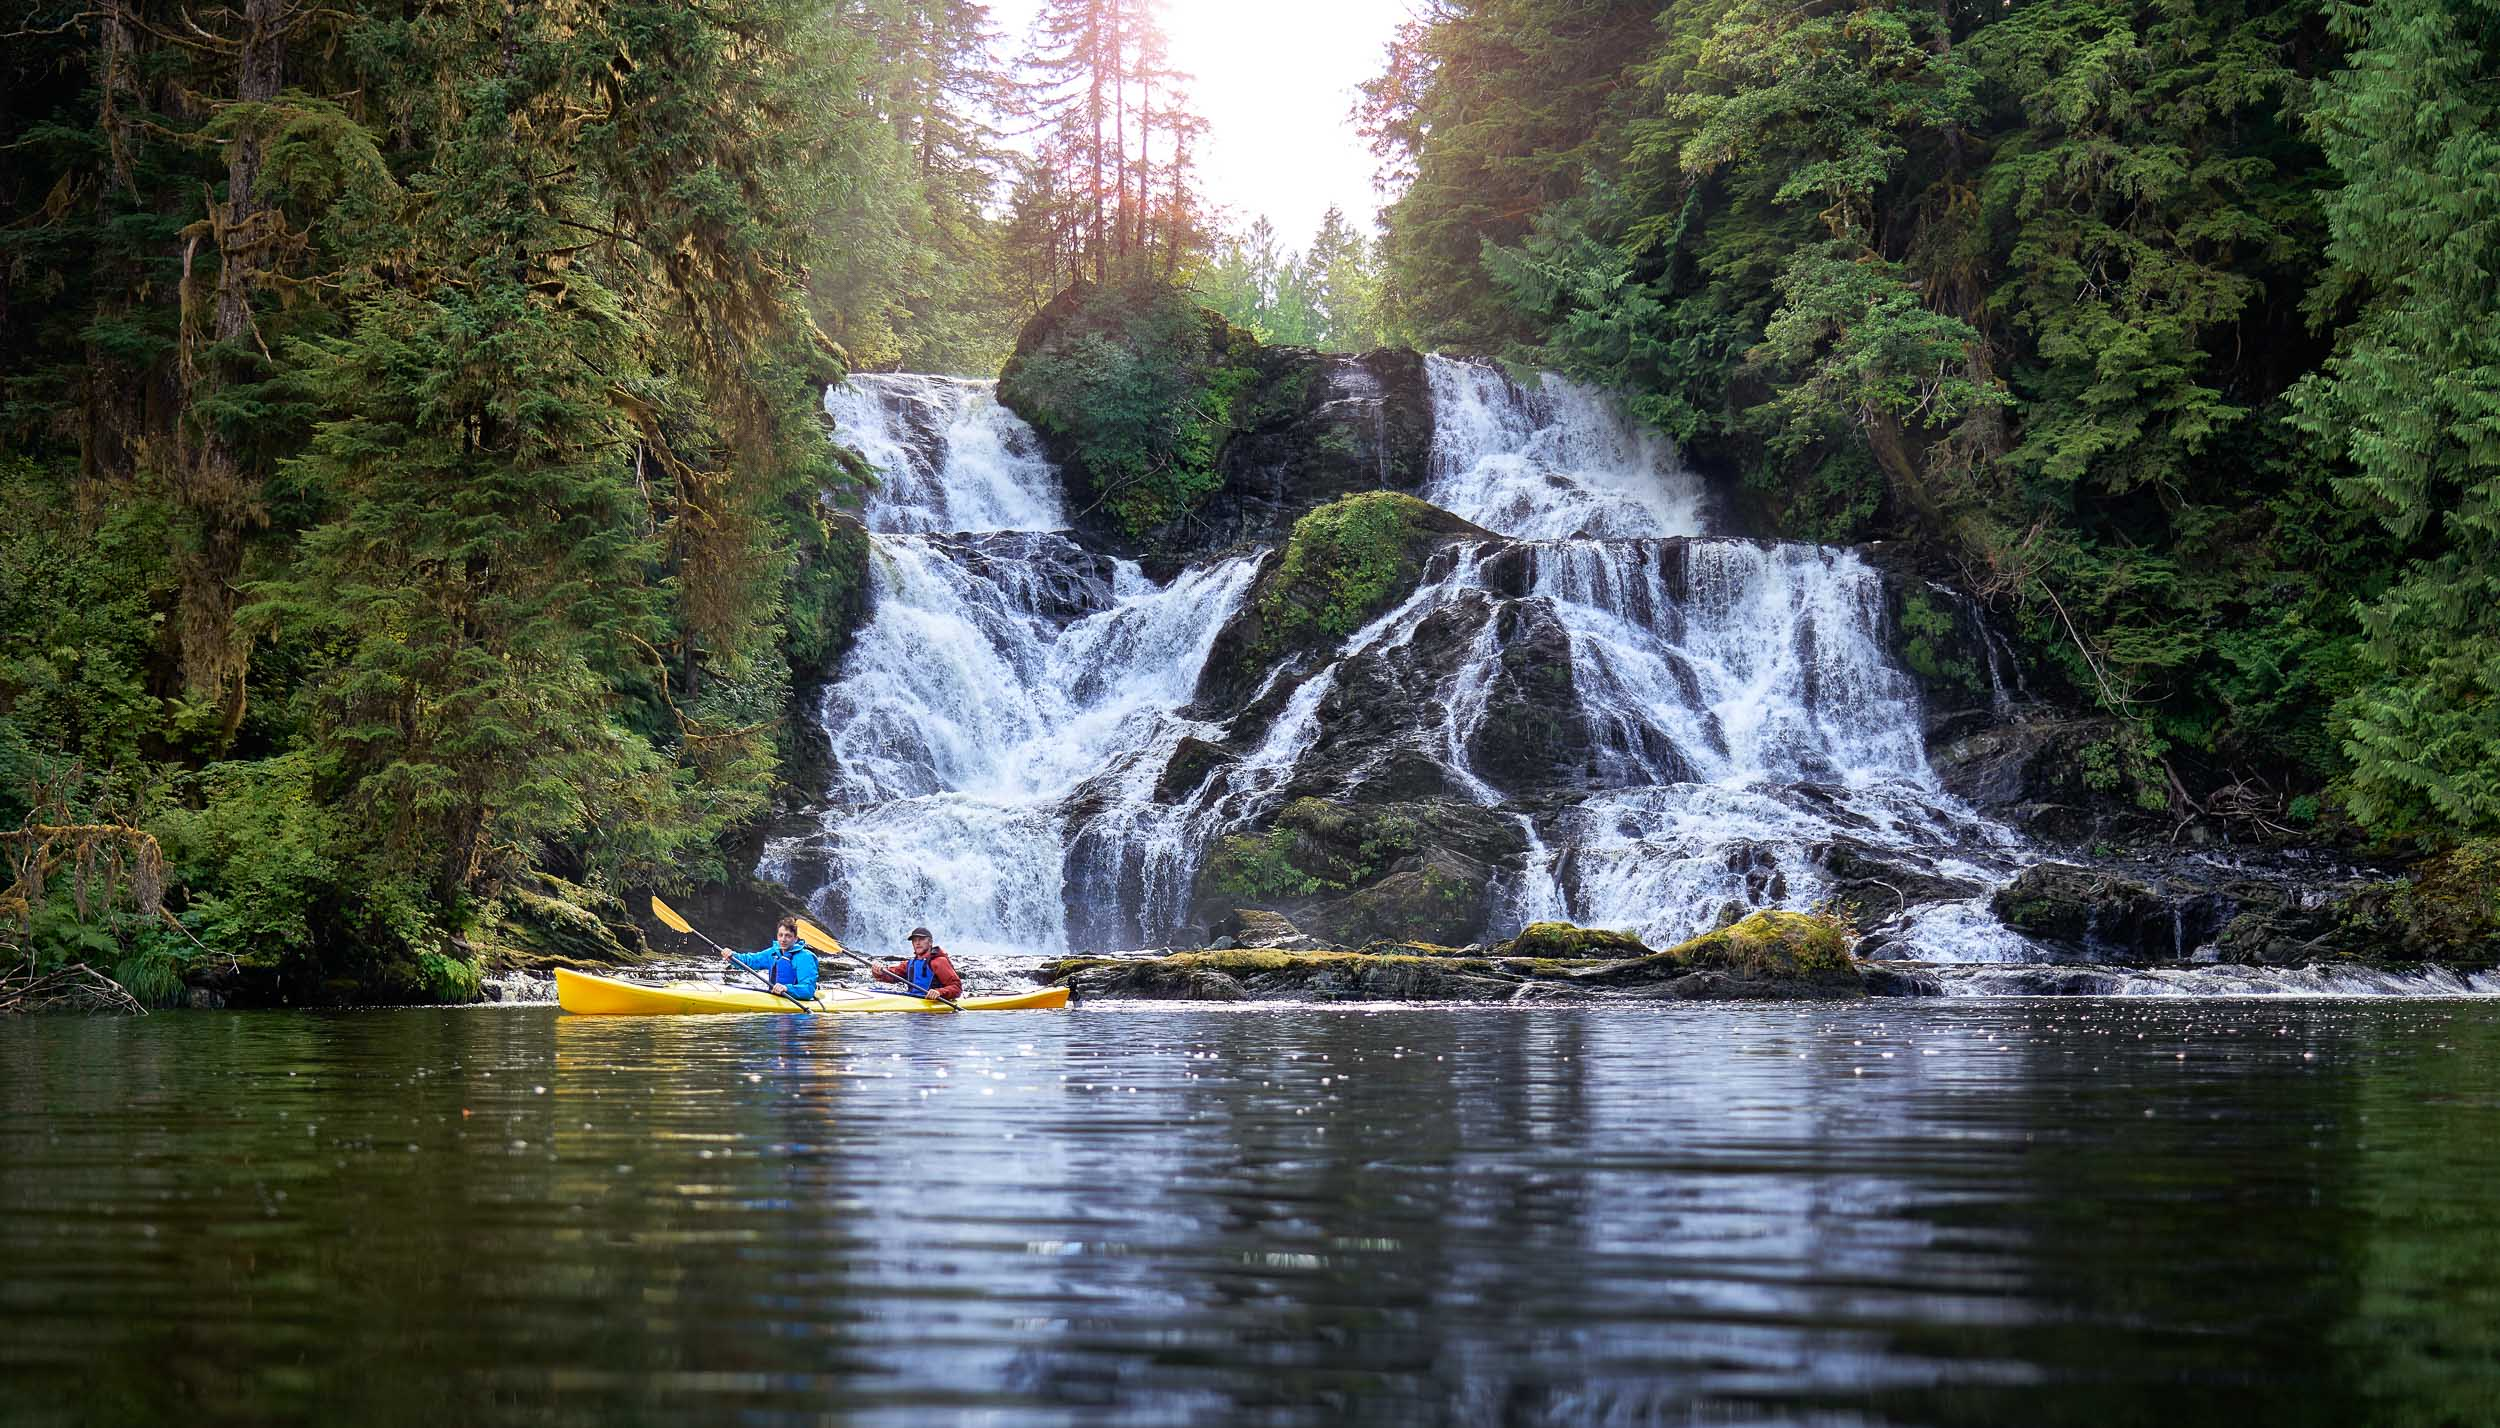 Kevin Steele - kayaking in front of a beautiful waterfall